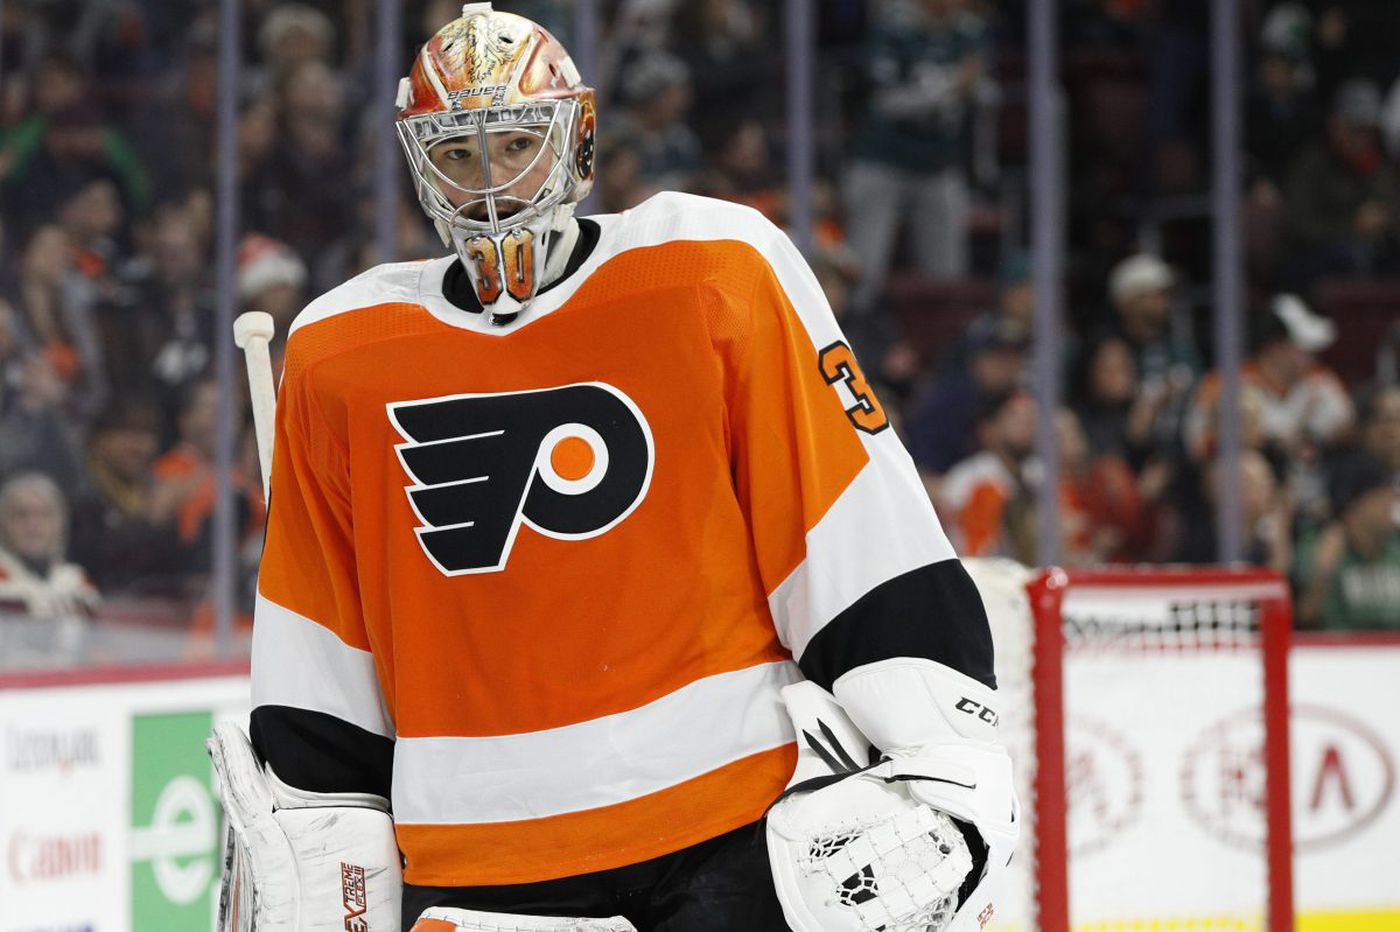 Flyers' Michal Neuvirth ready for challenge ahead